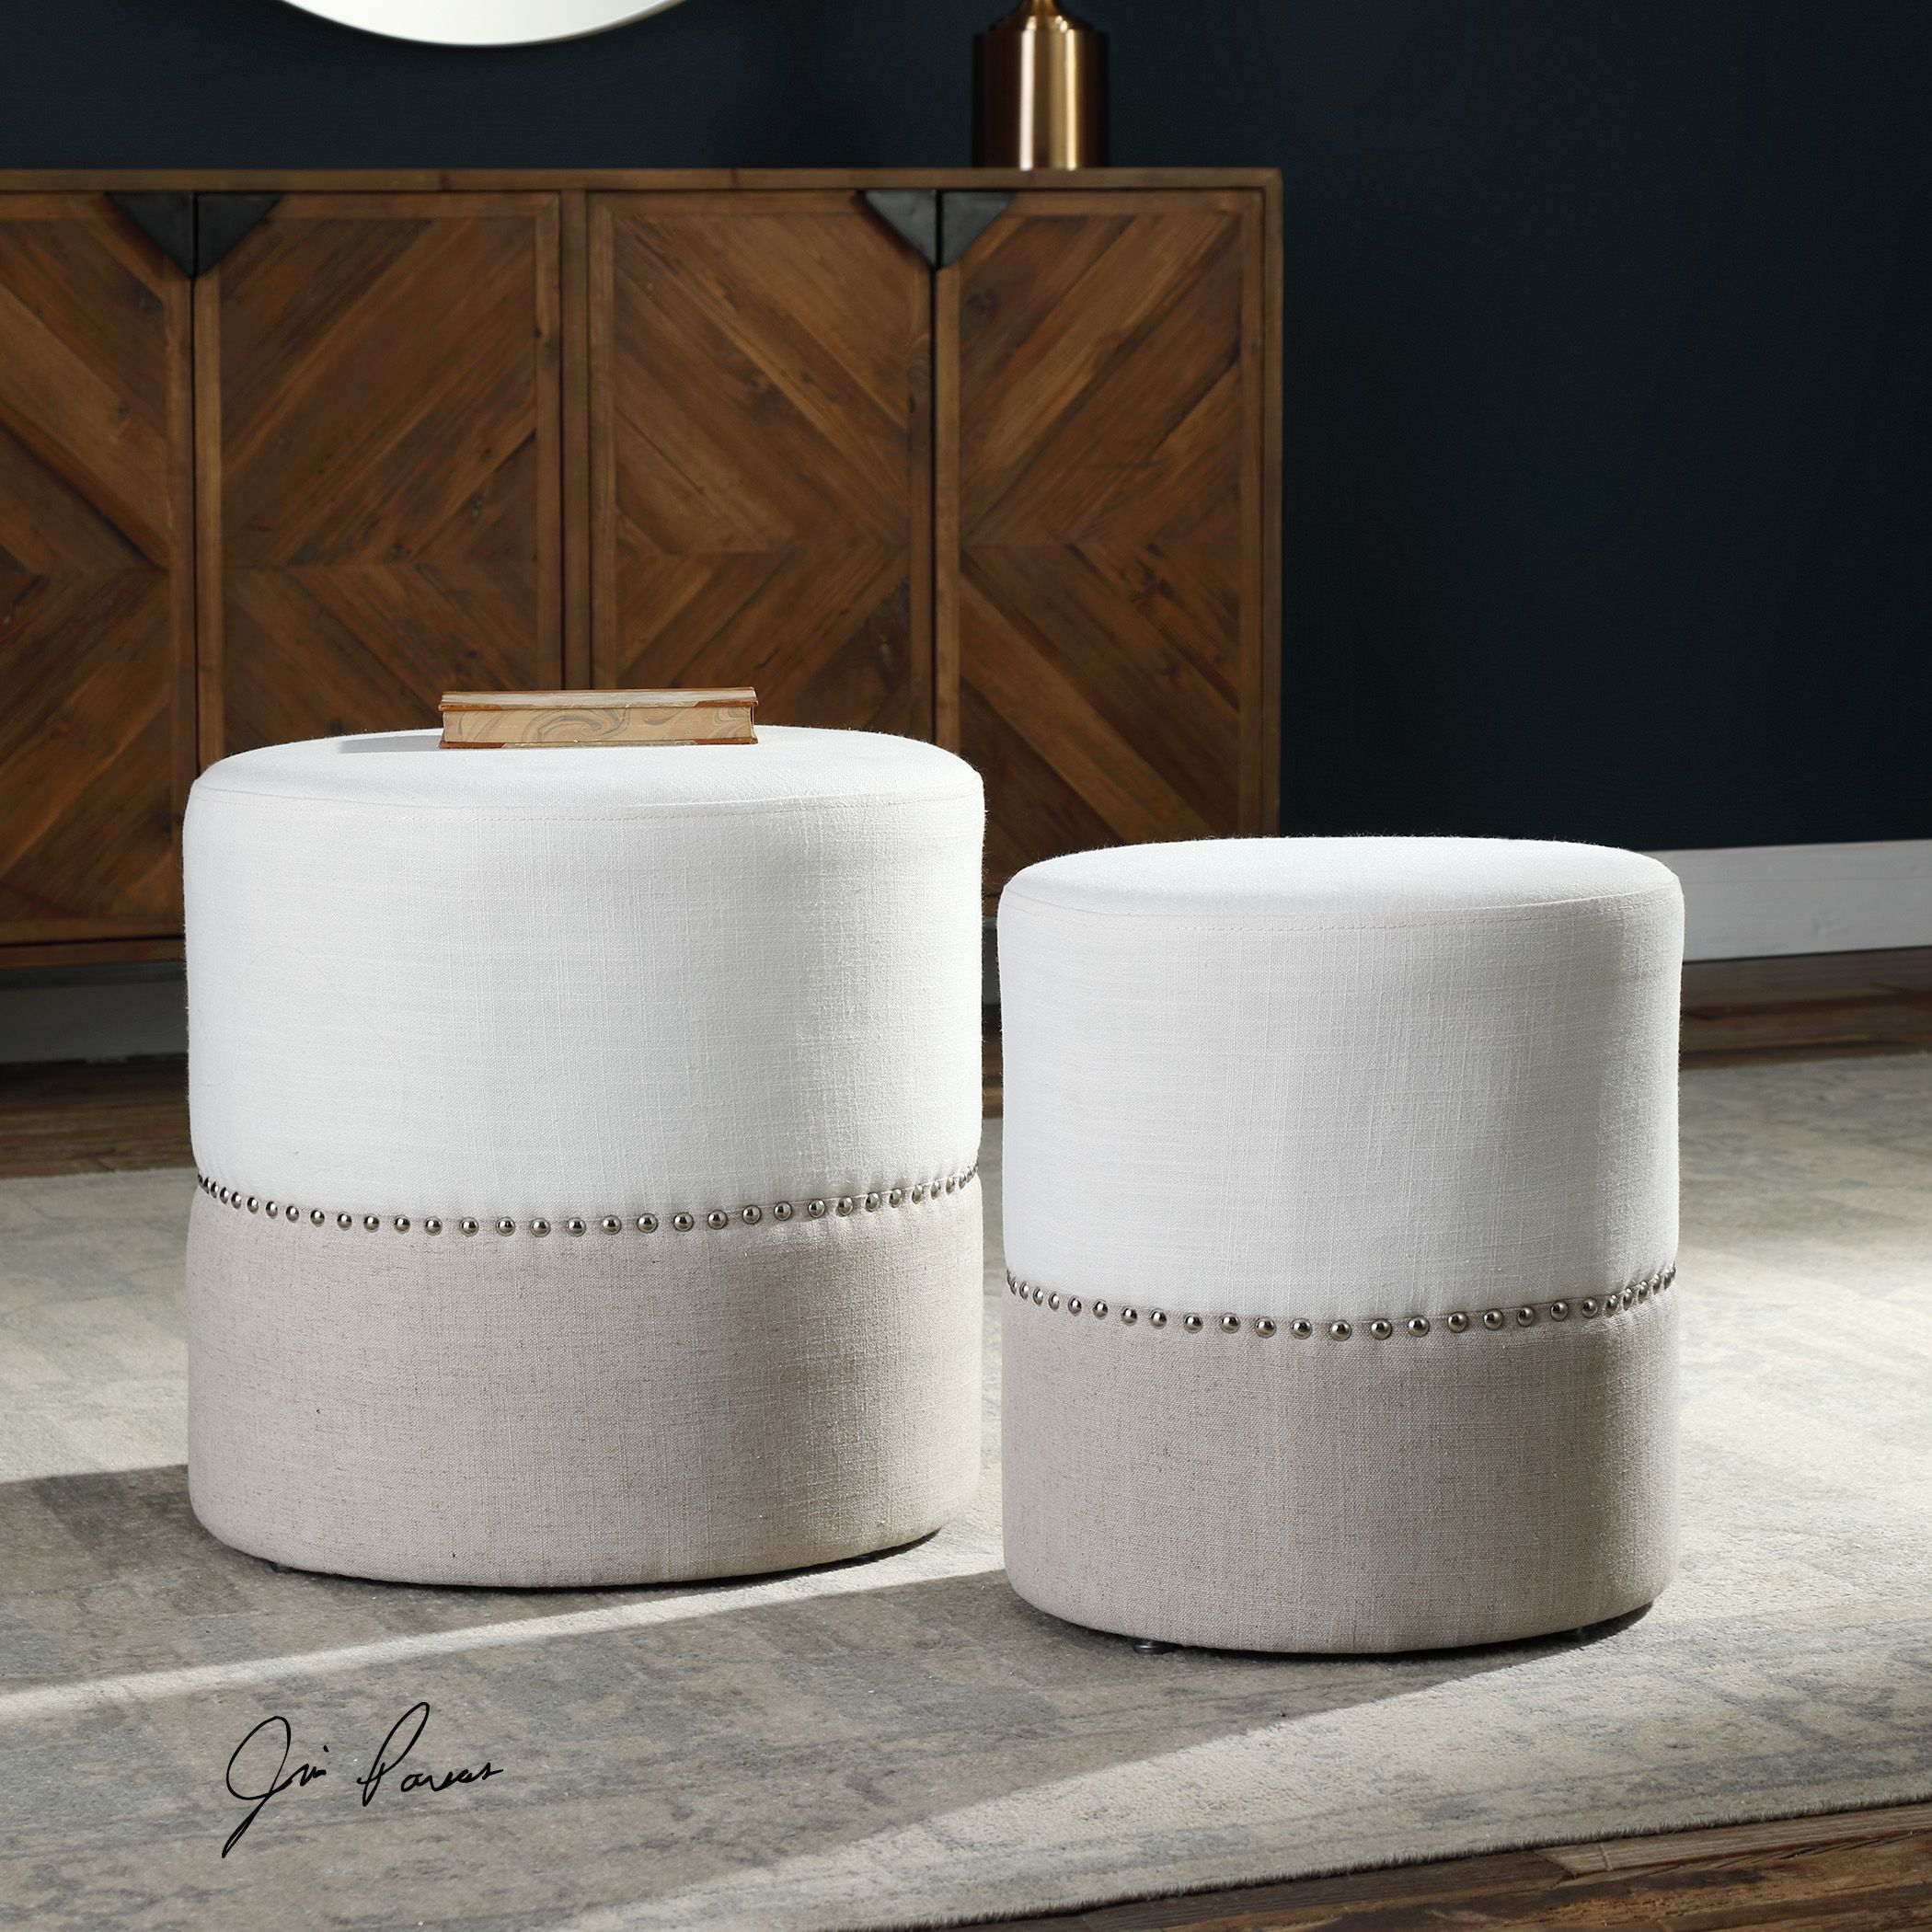 Accent Chair With Nesting Ottoman: Tilda Two-Toned Nesting Ottomans S/2